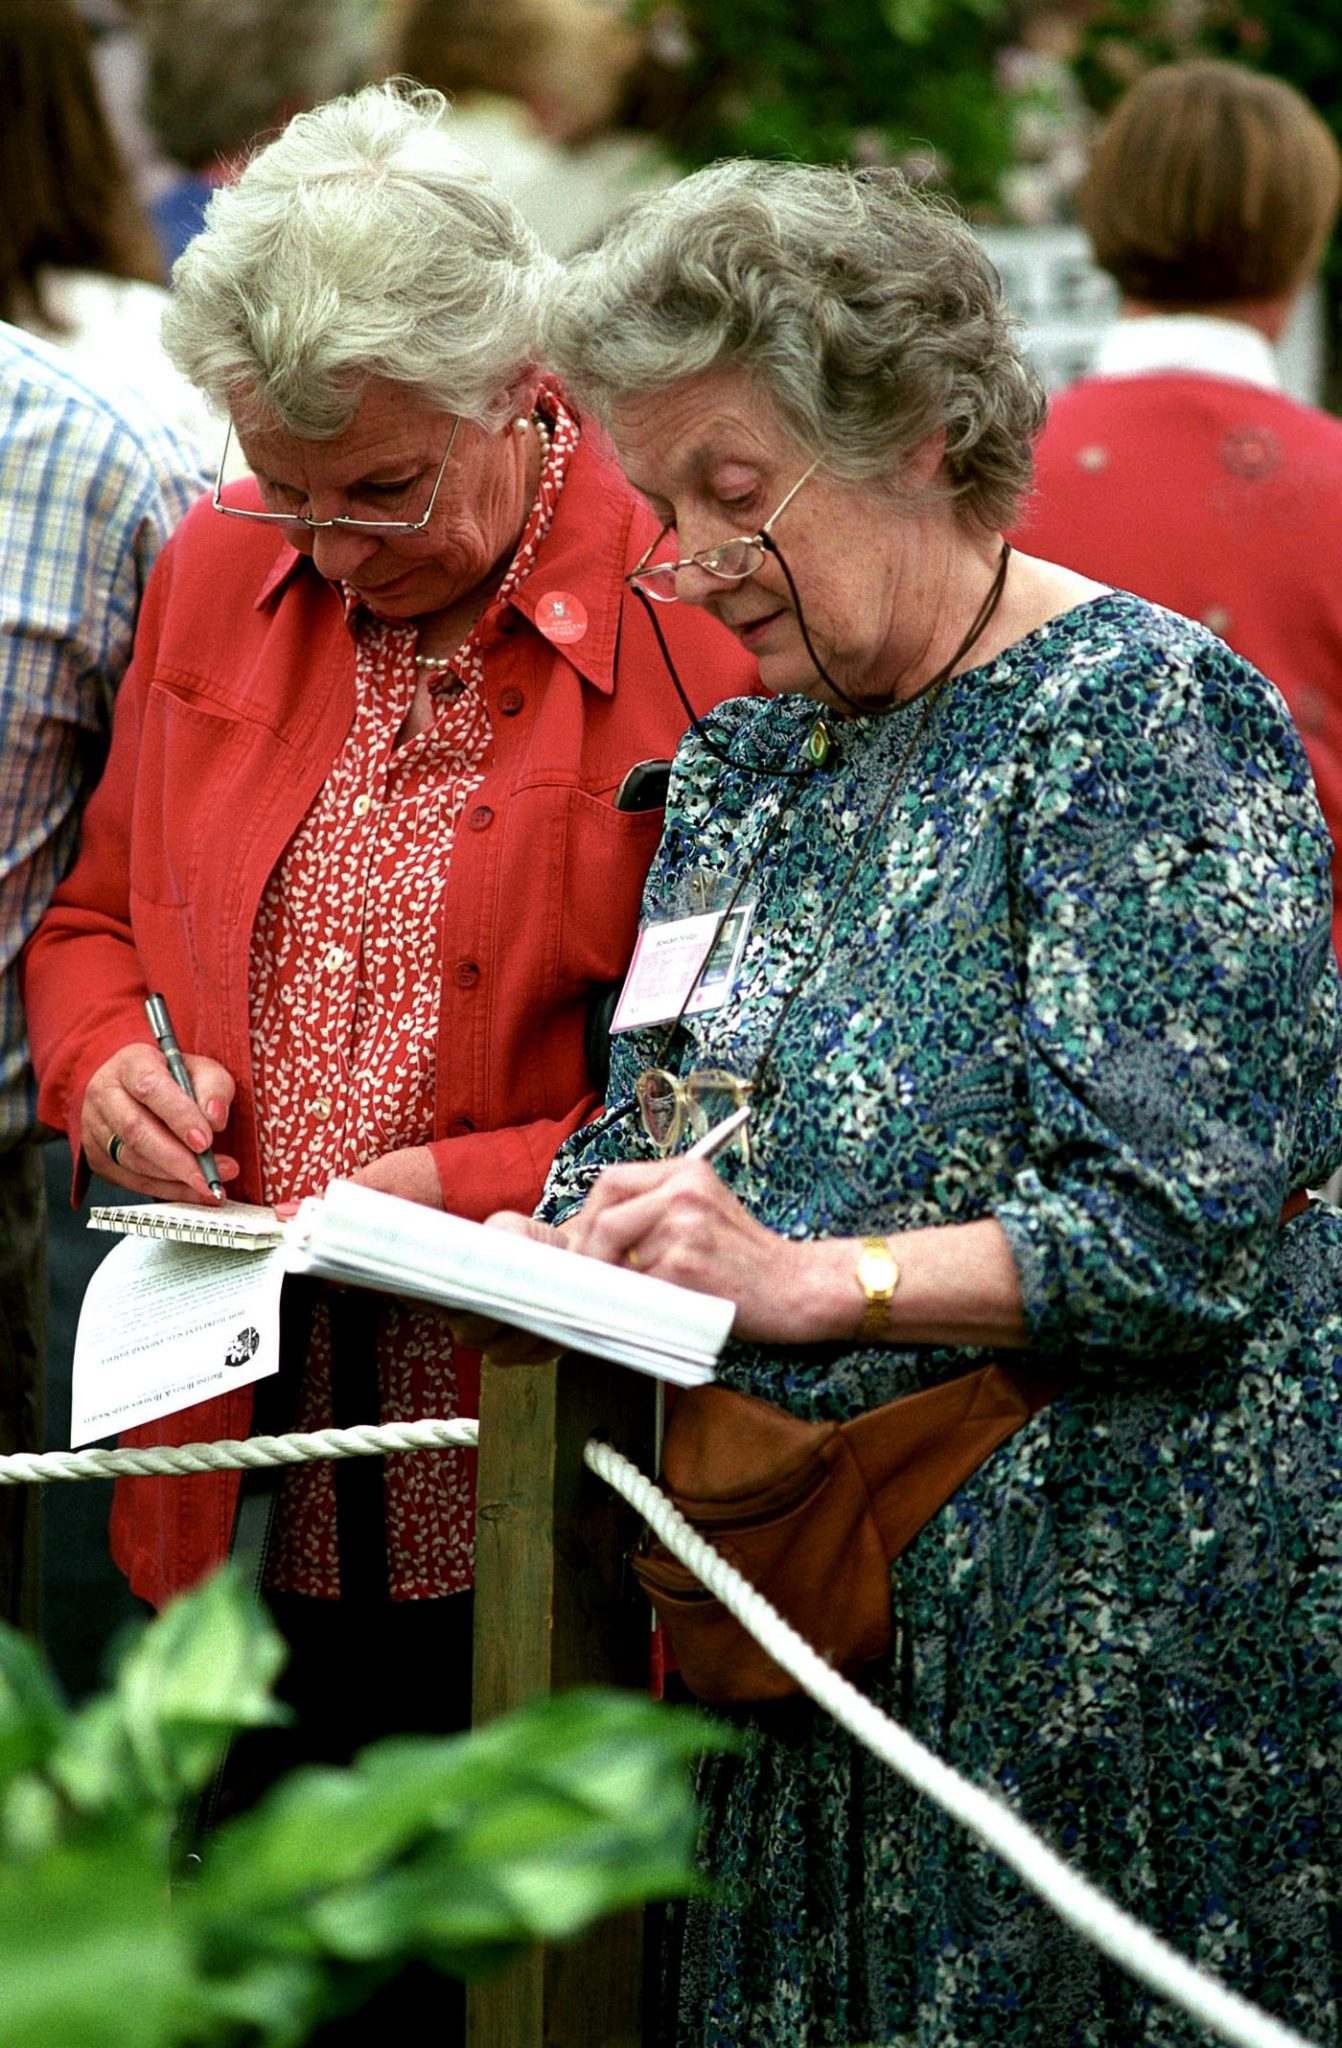 Visitors attend the Chelsea Flower Show